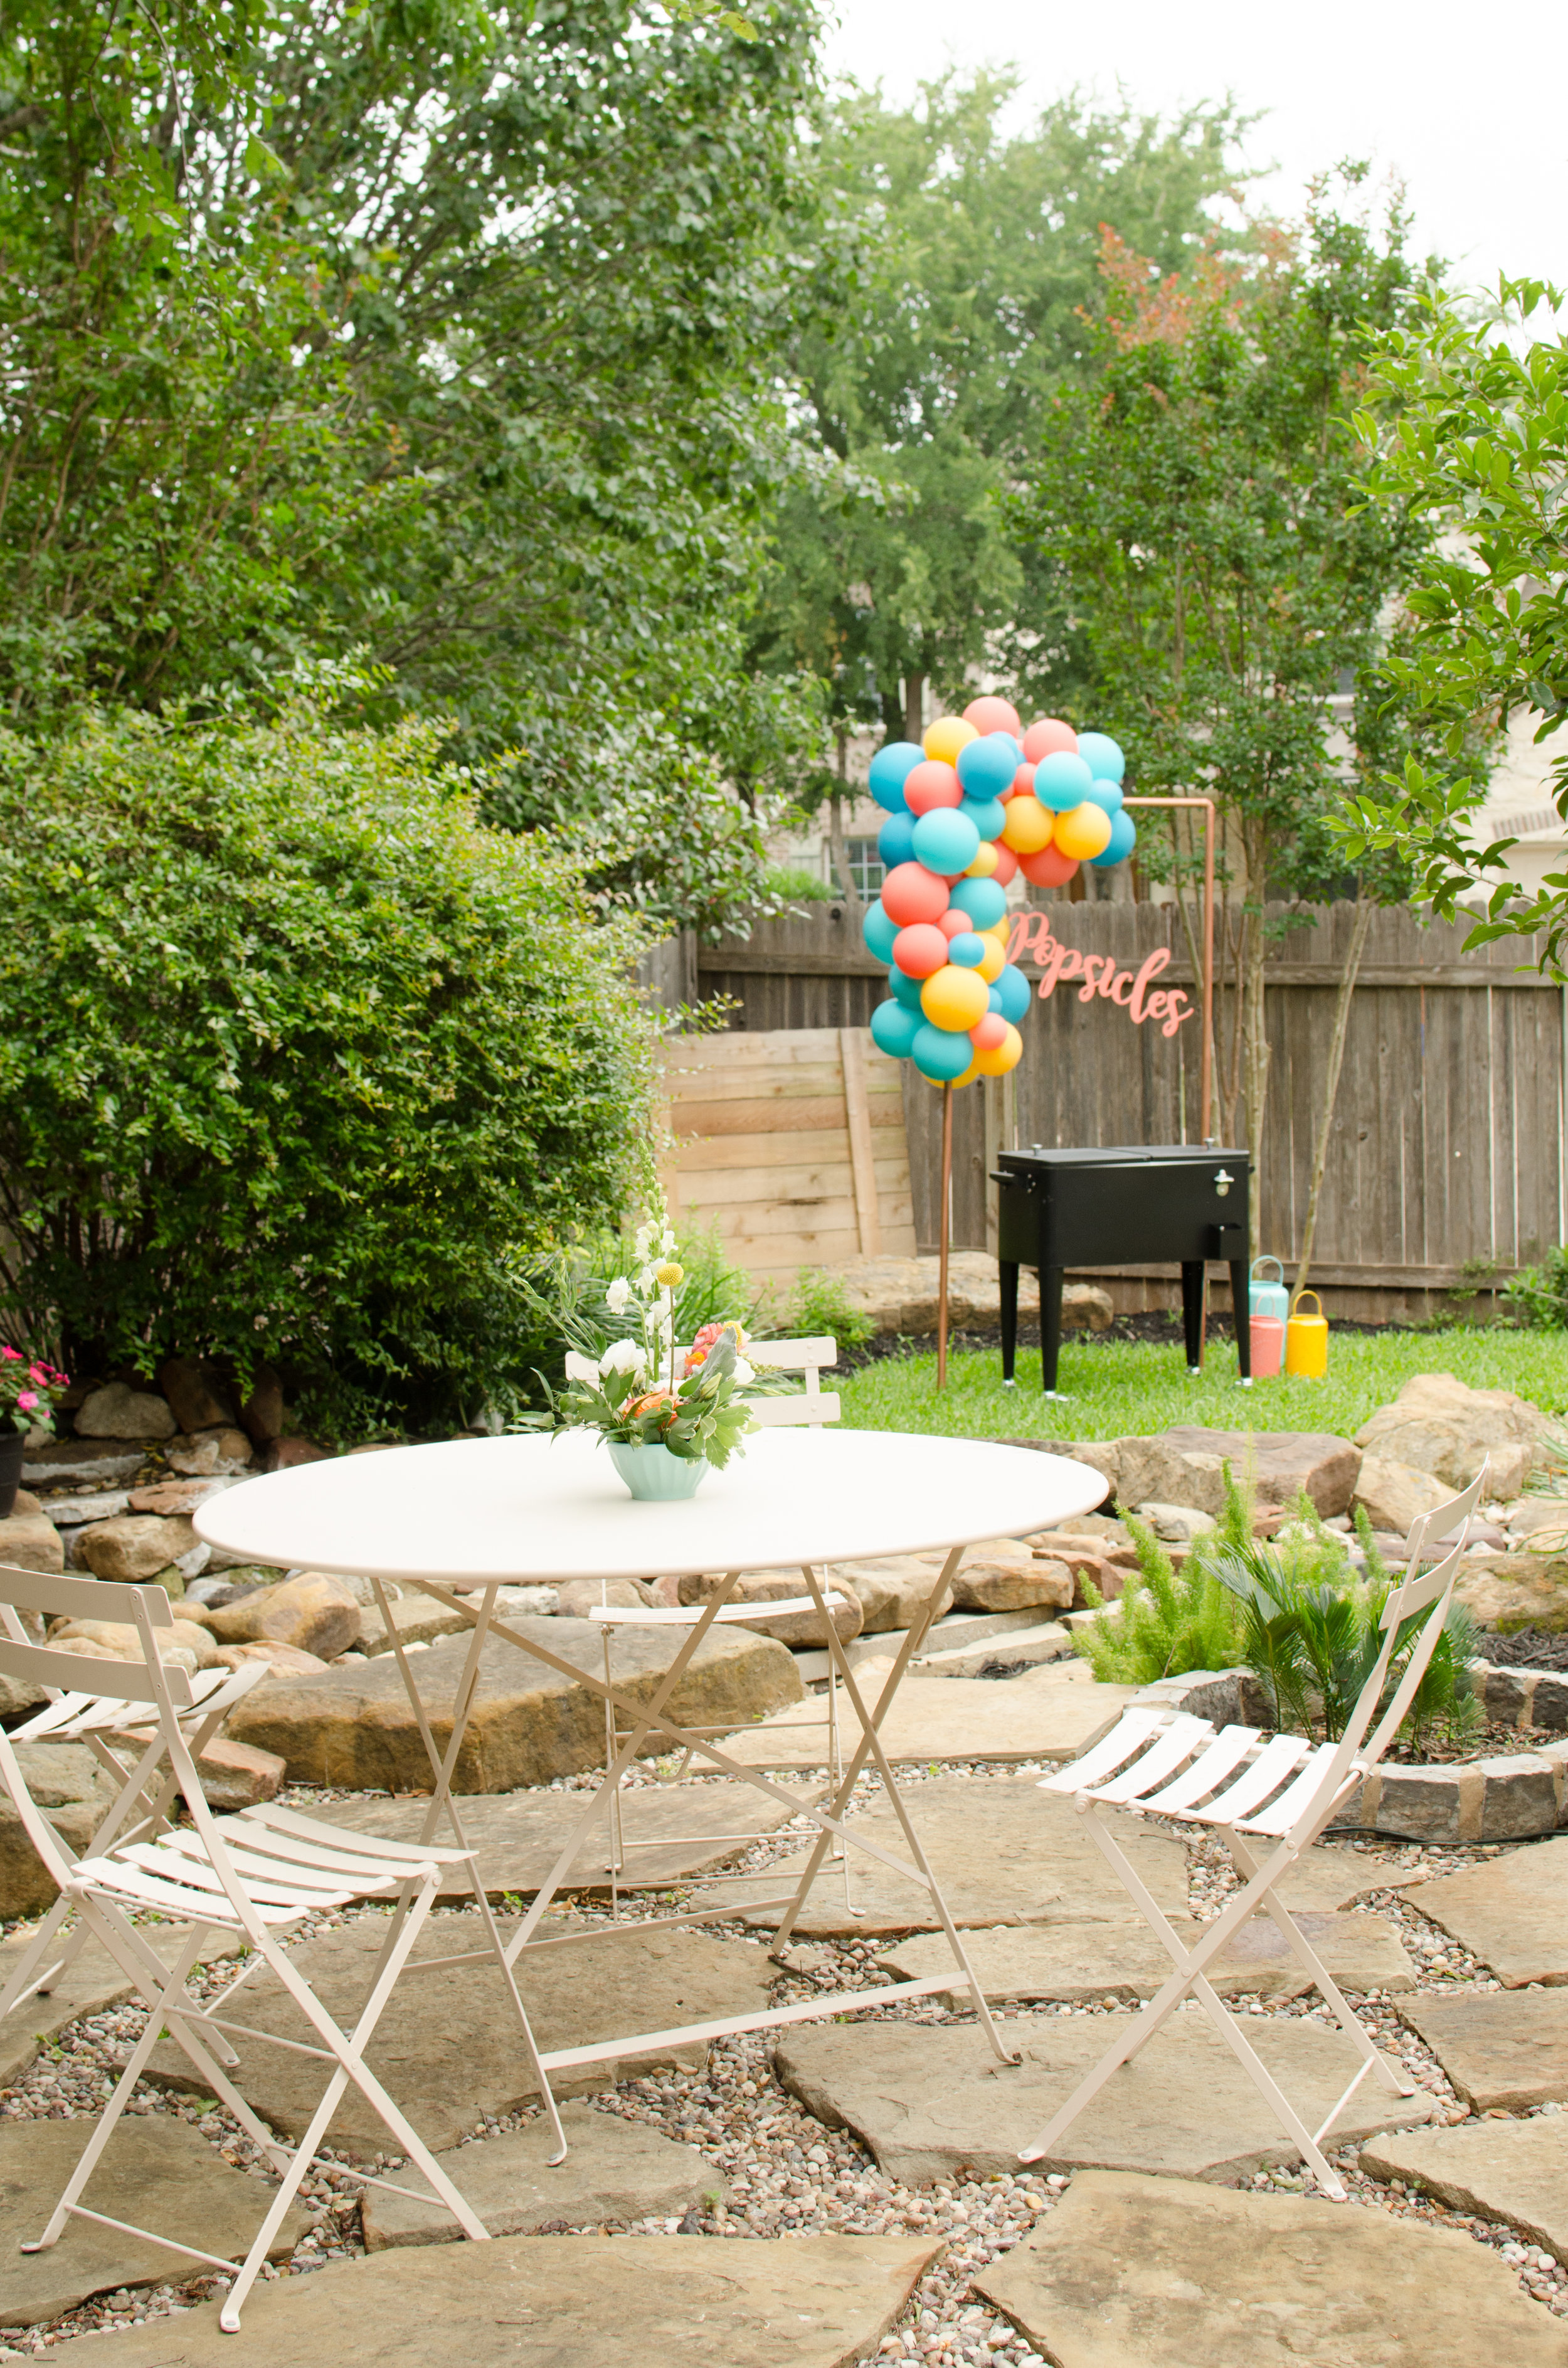 Casual and colorful summer party ideas from Mint Event Design www.minteventdesign.com